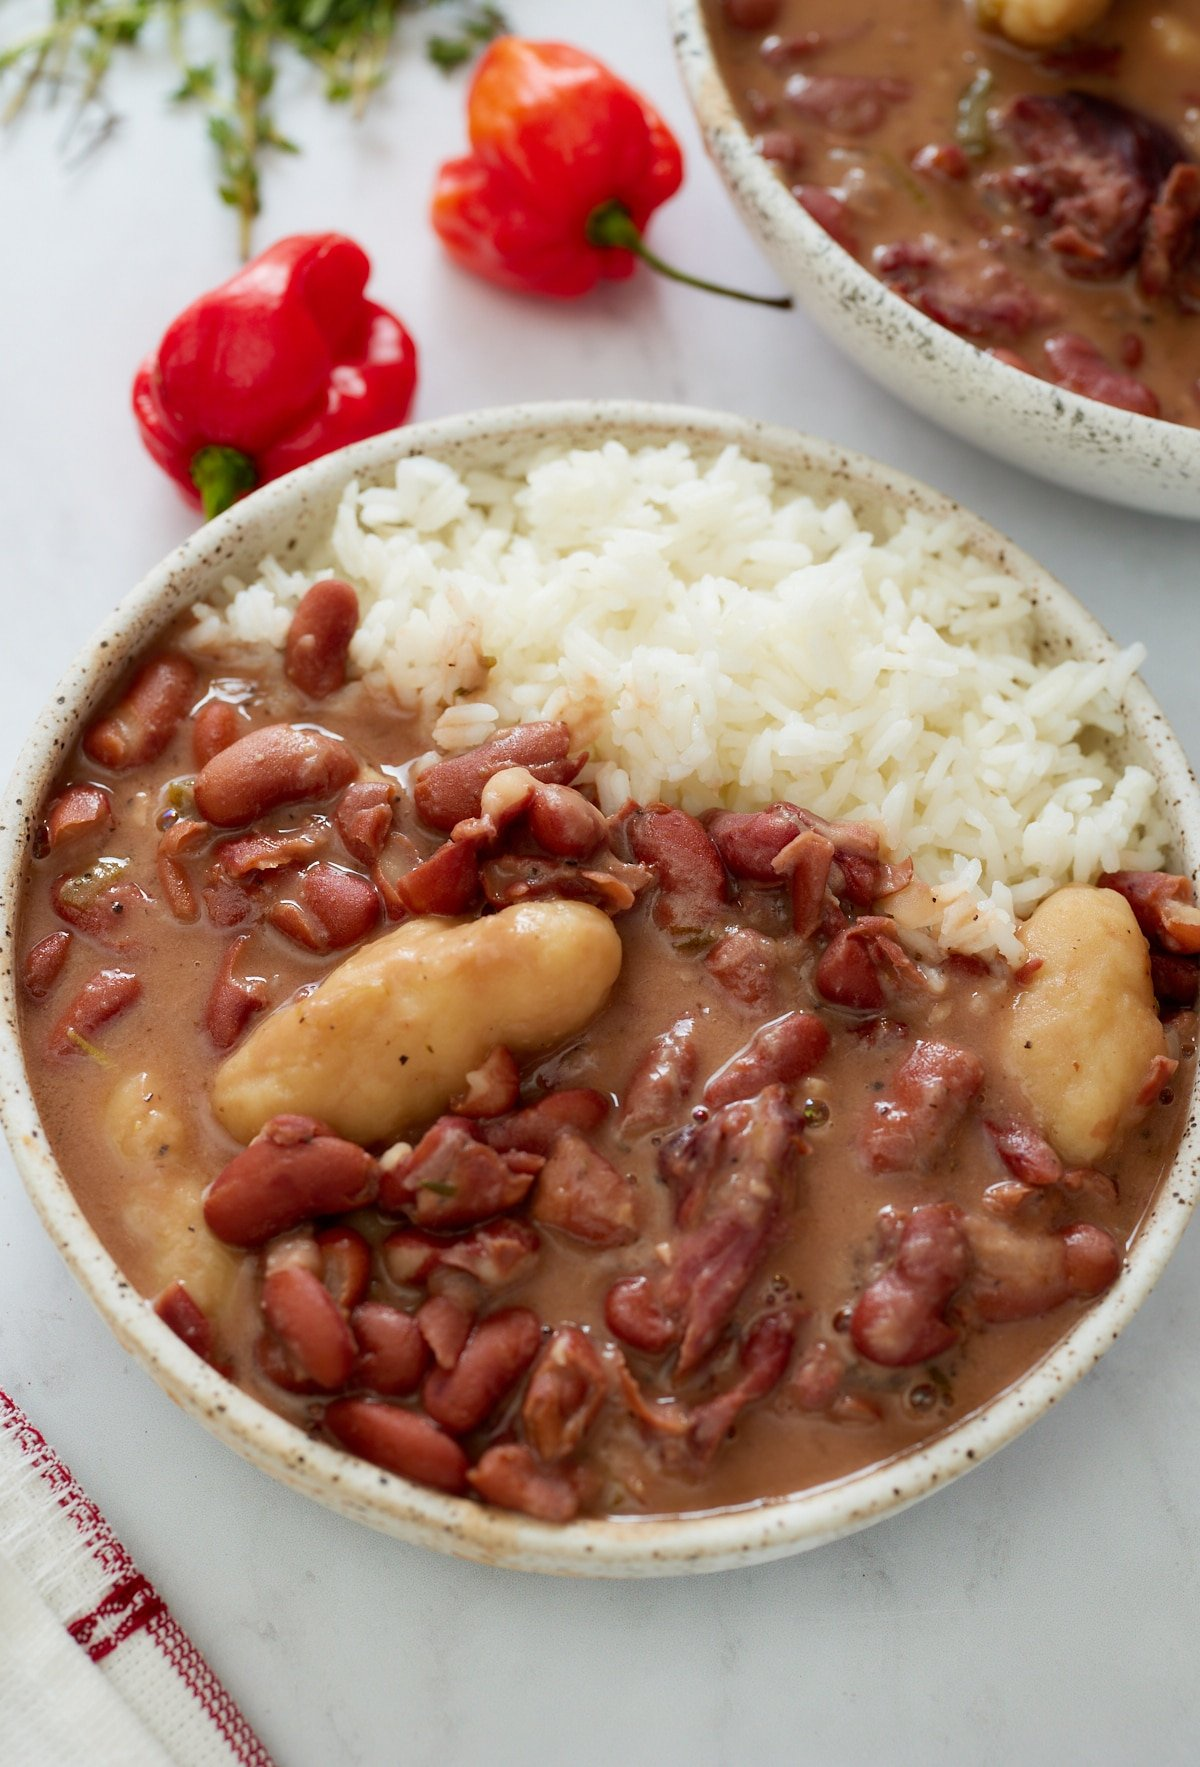 jamaican stew peas in bowl with white rice